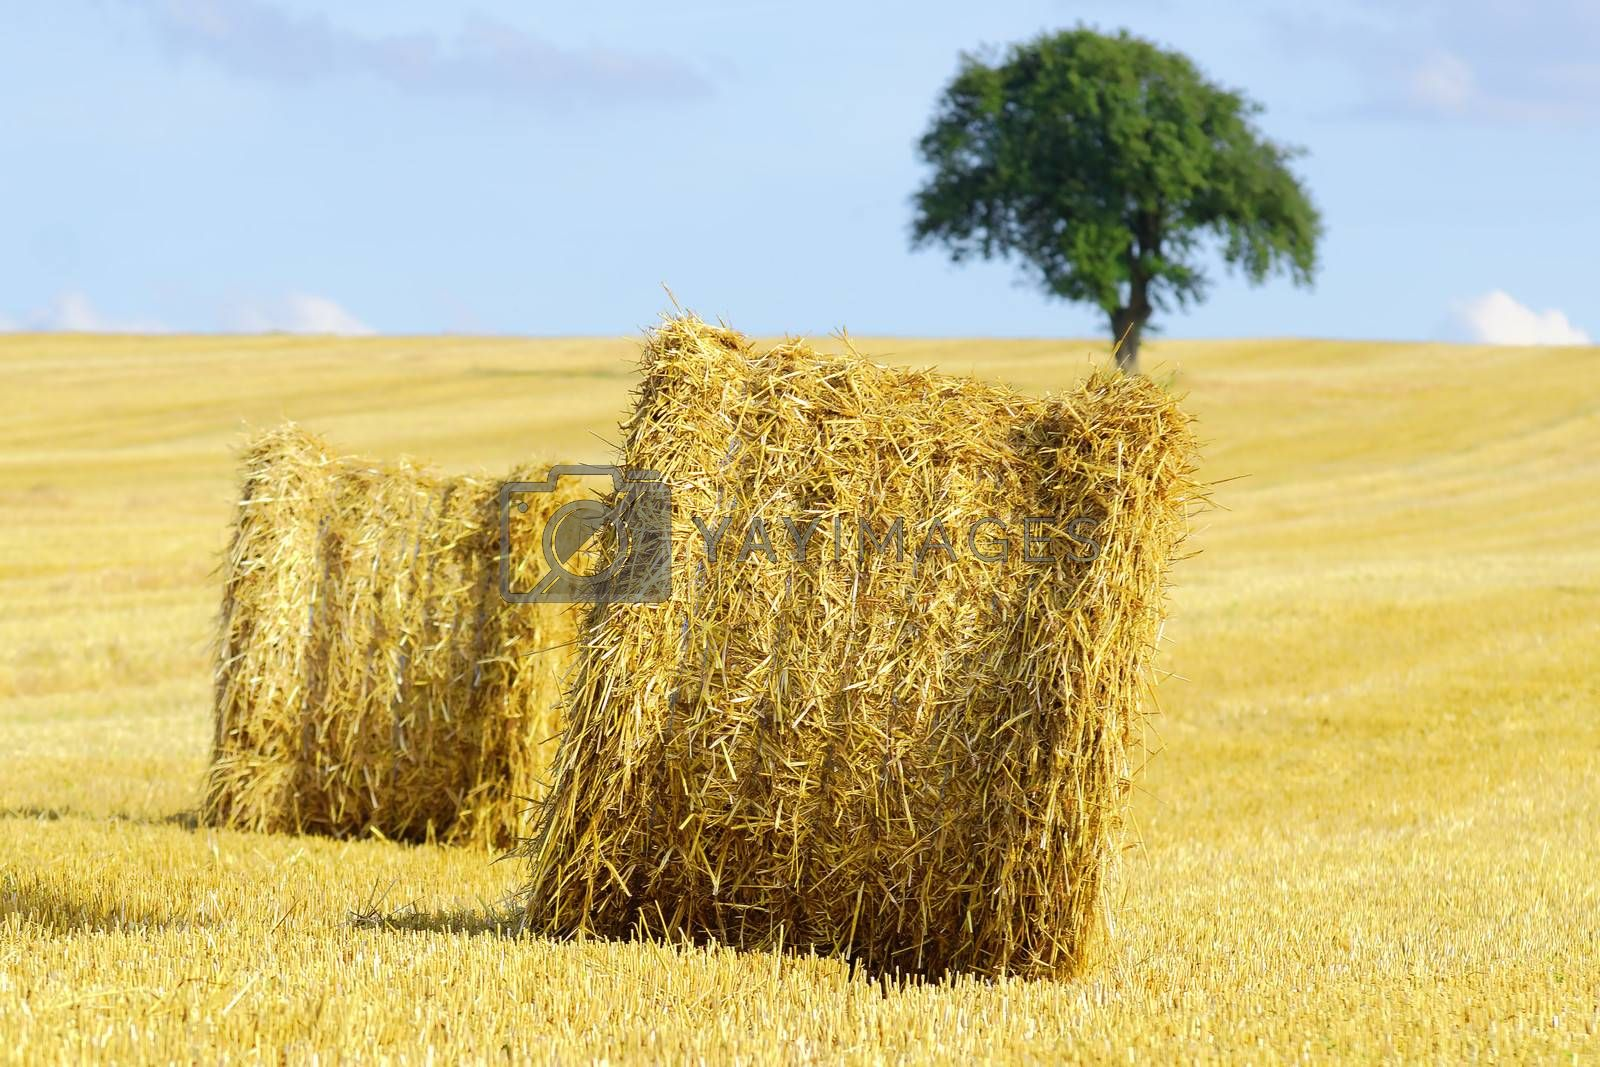 straw bales ,isolated tree in the background